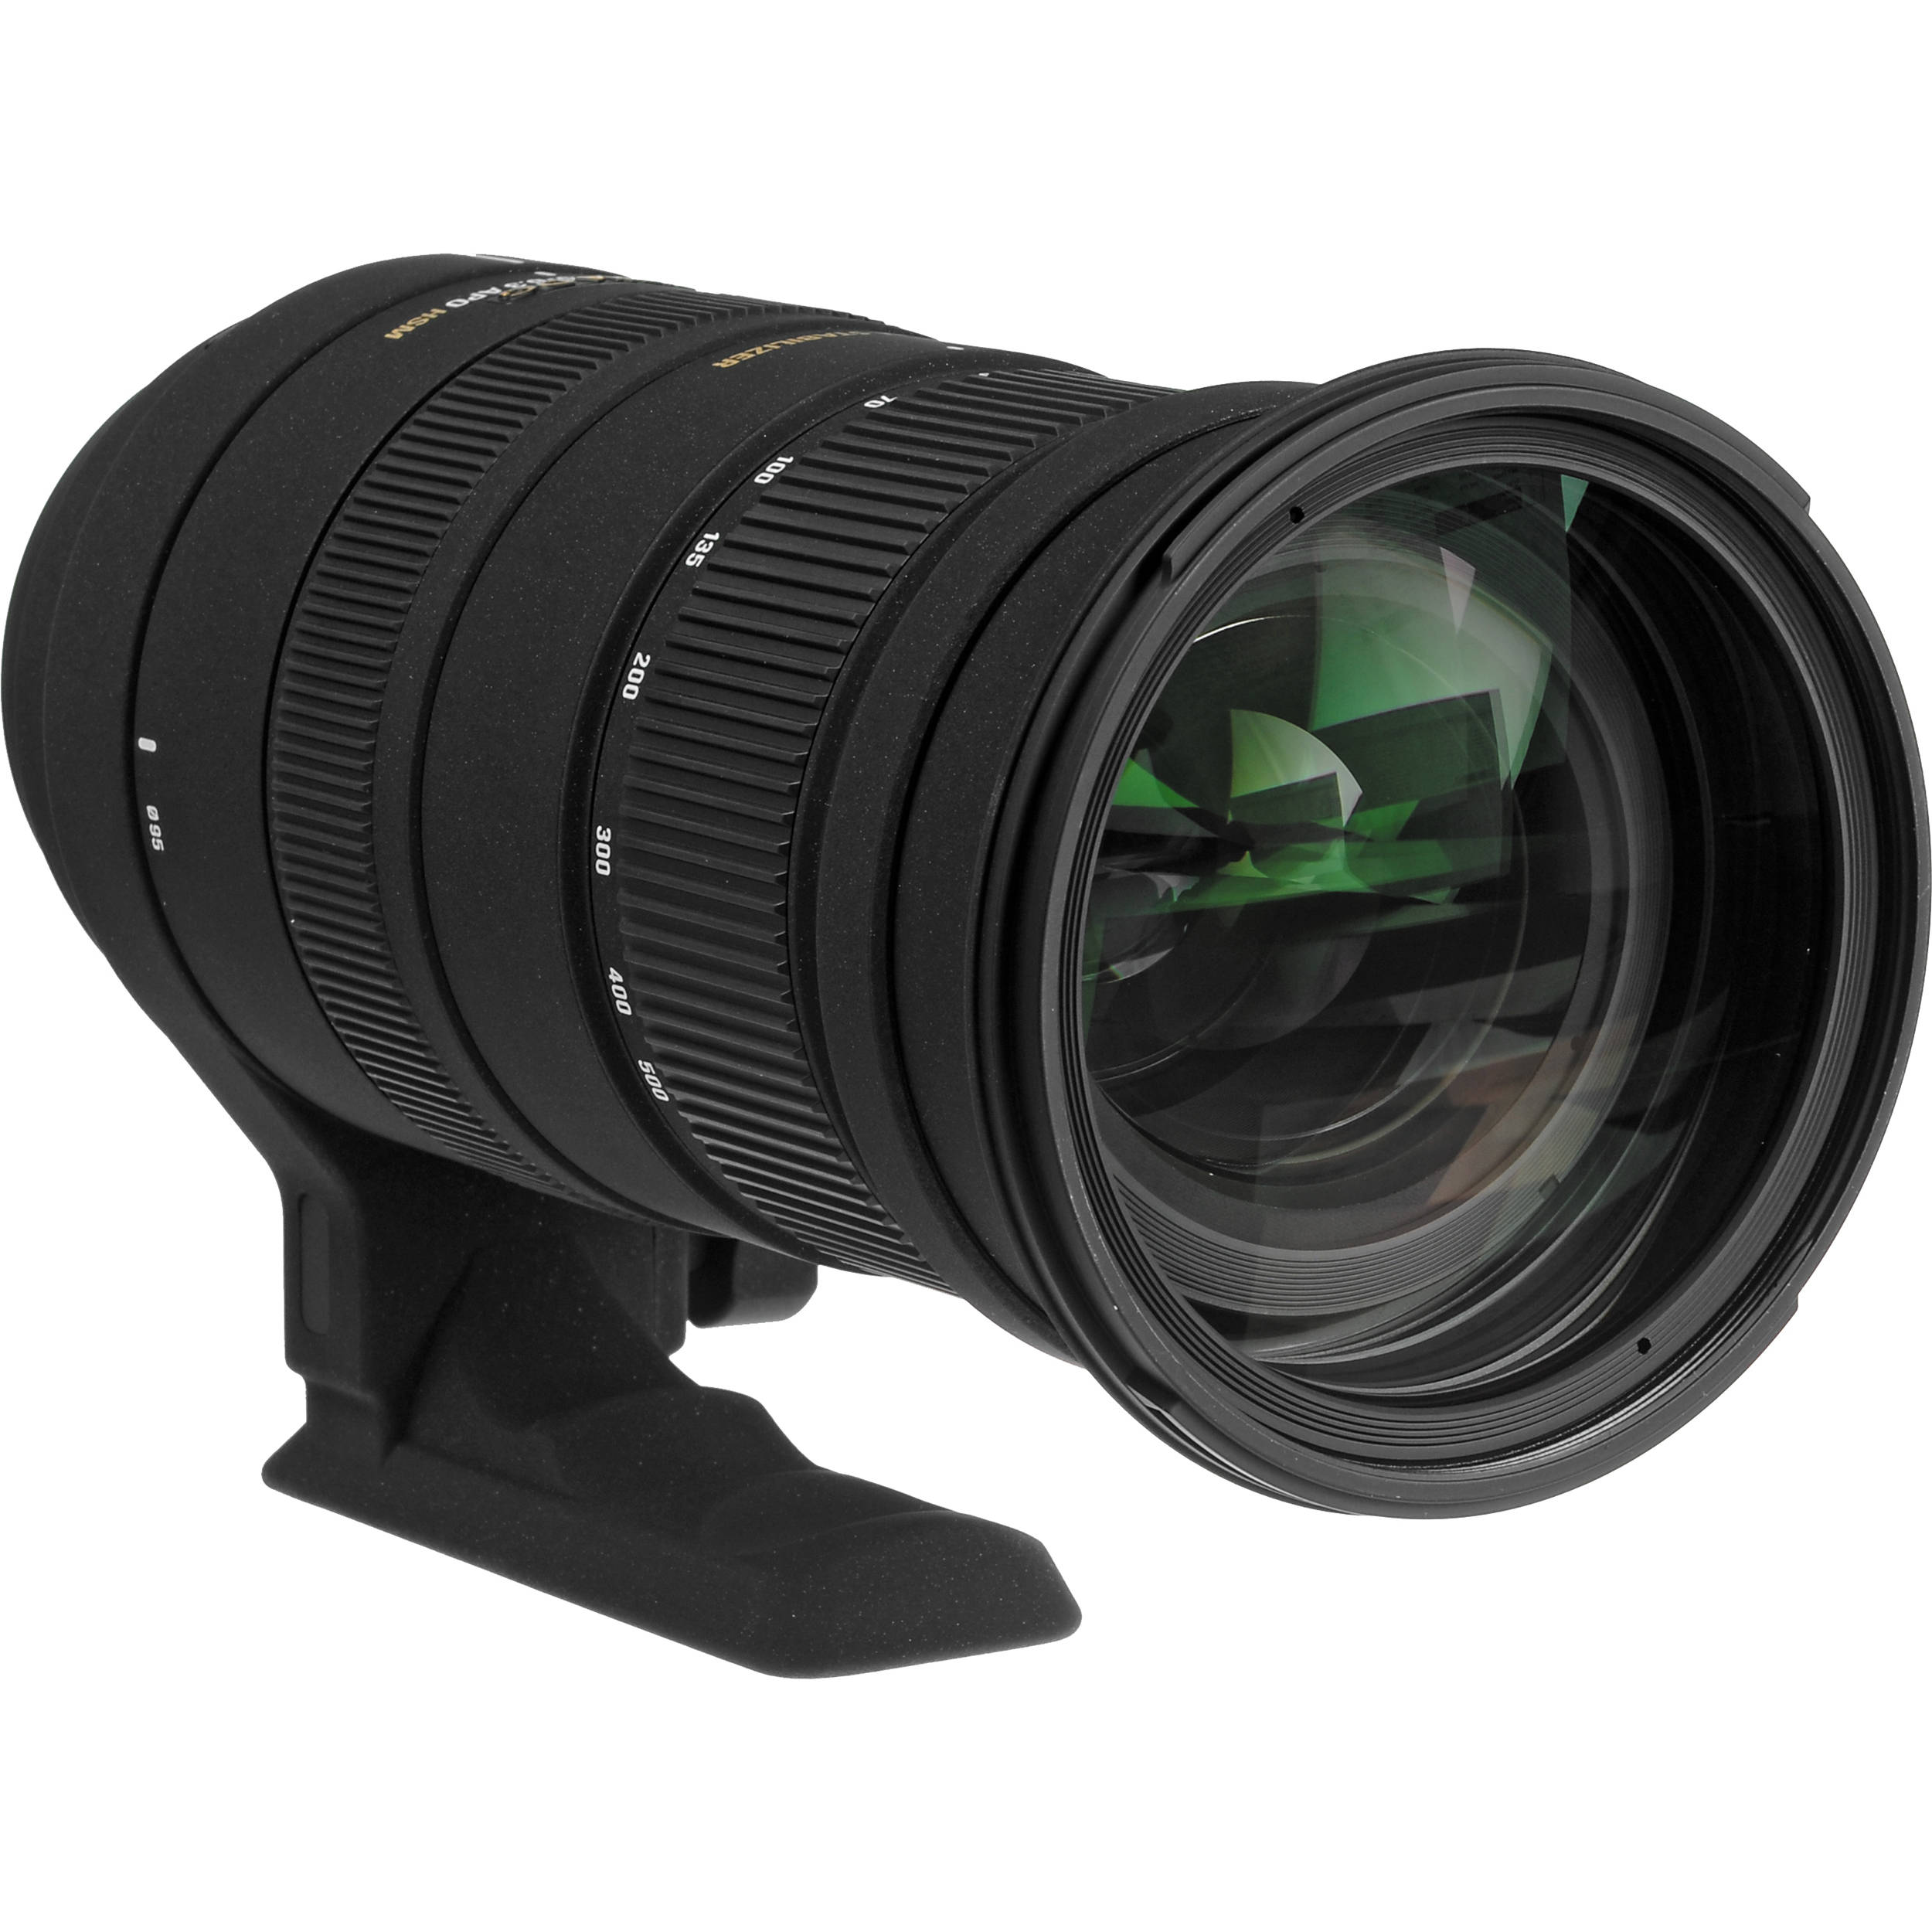 sigma 50 500mm f 4 5 6 3 apo dg os hsm lens for canon eos. Black Bedroom Furniture Sets. Home Design Ideas